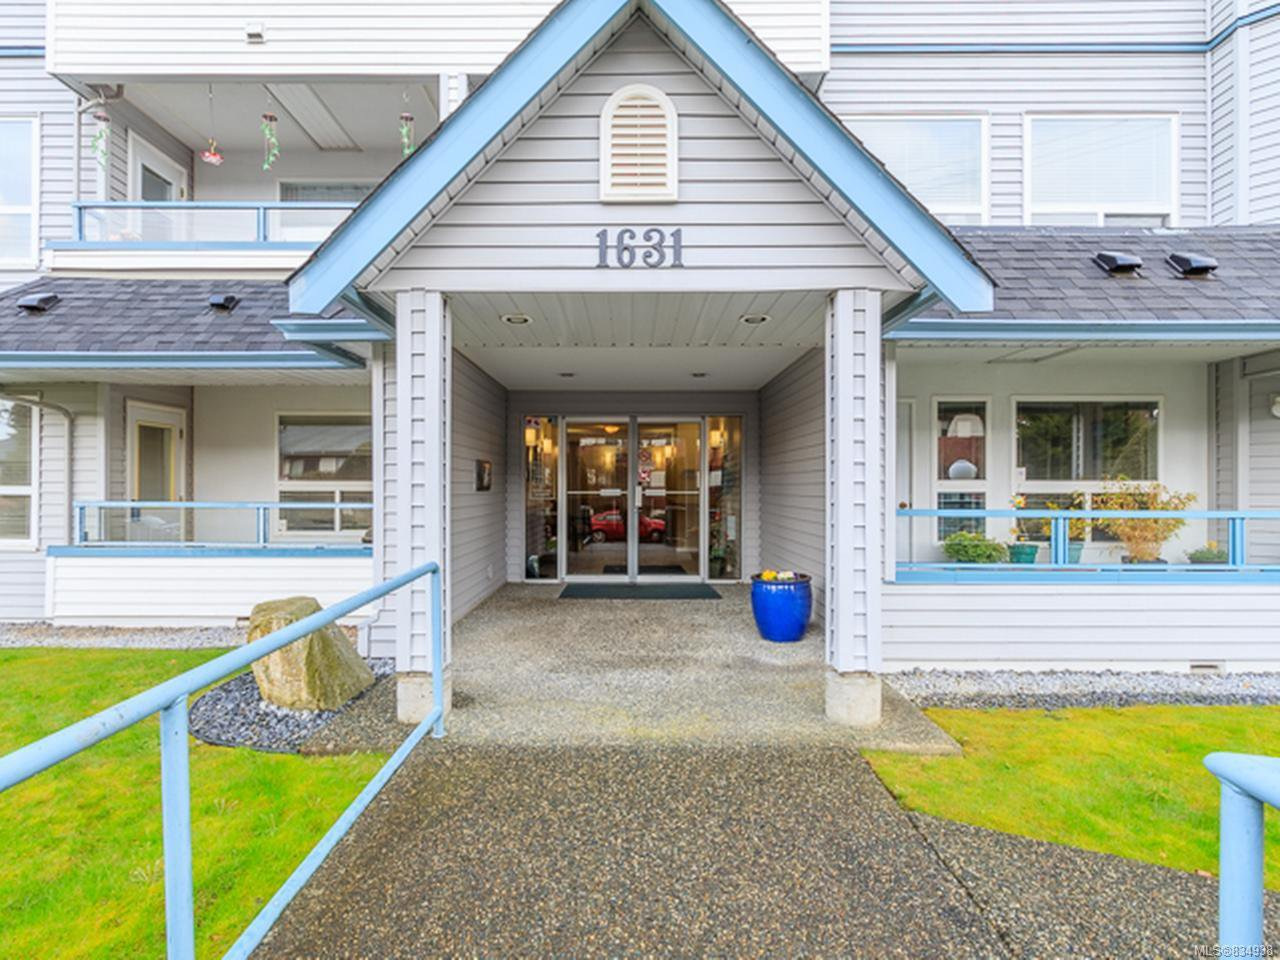 Main Photo: 109 1631 Dufferin Cres in NANAIMO: Na Central Nanaimo Condo for sale (Nanaimo)  : MLS®# 834938